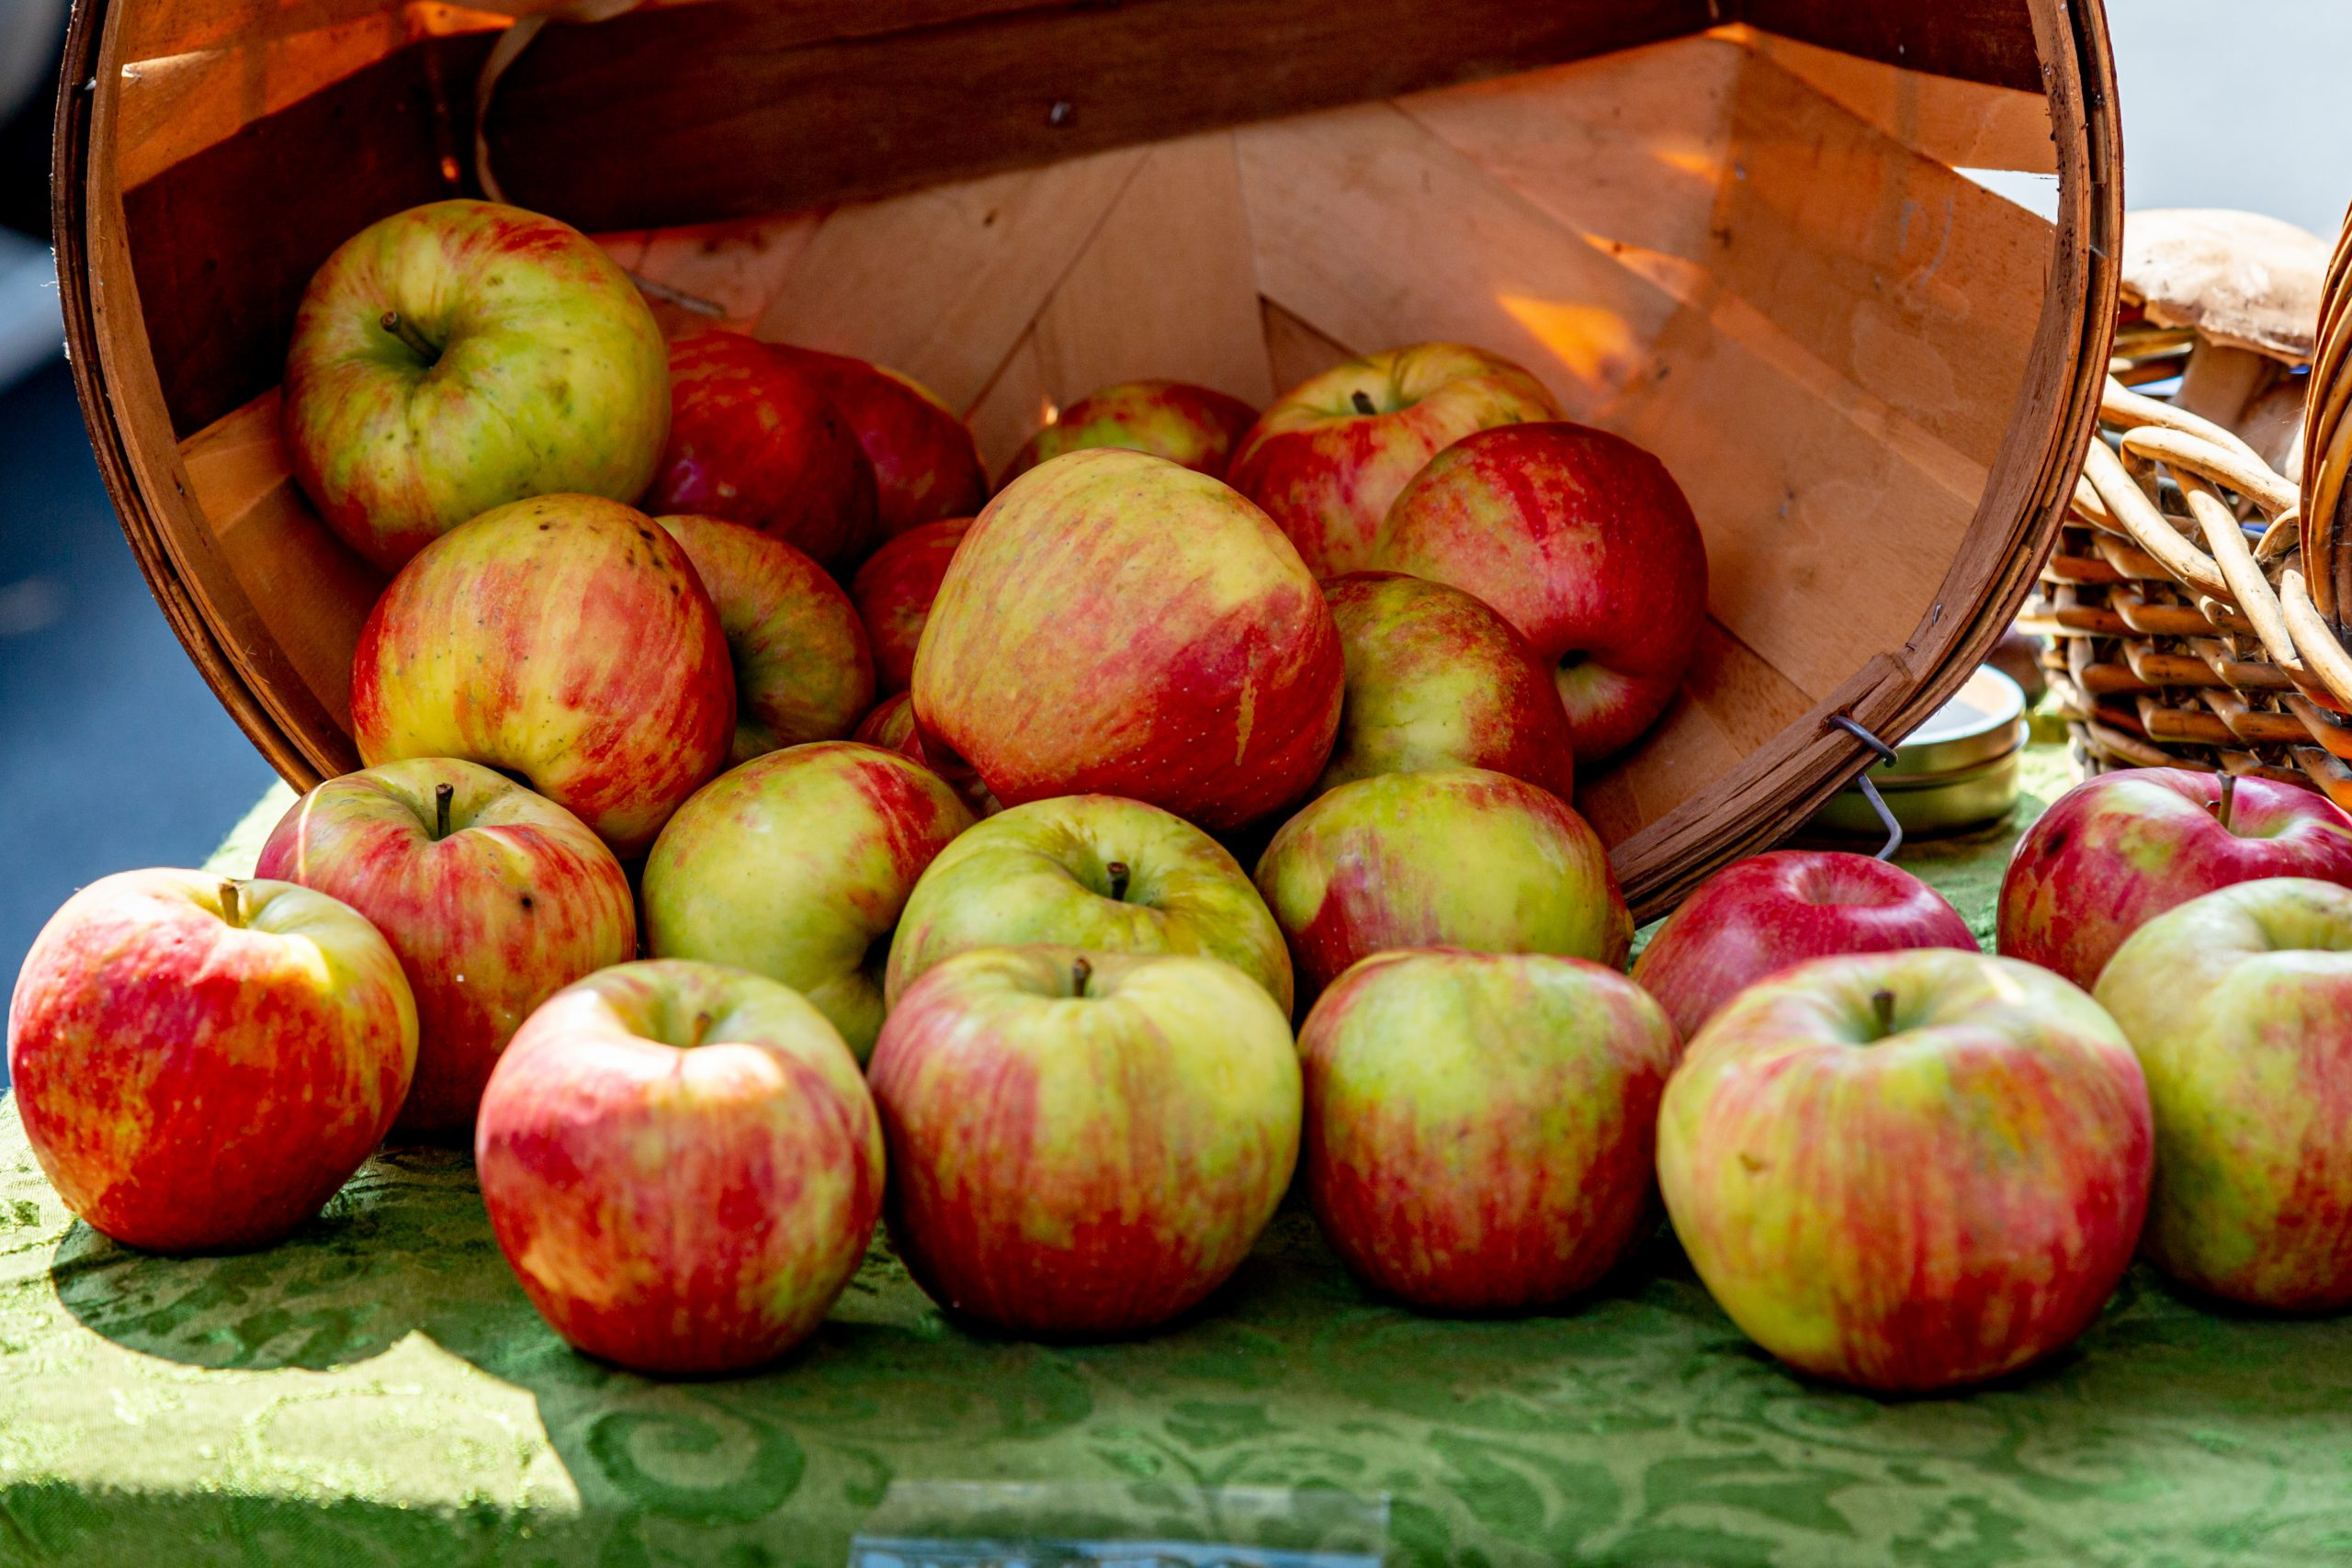 Apples, prebiotic-rich food for gut health